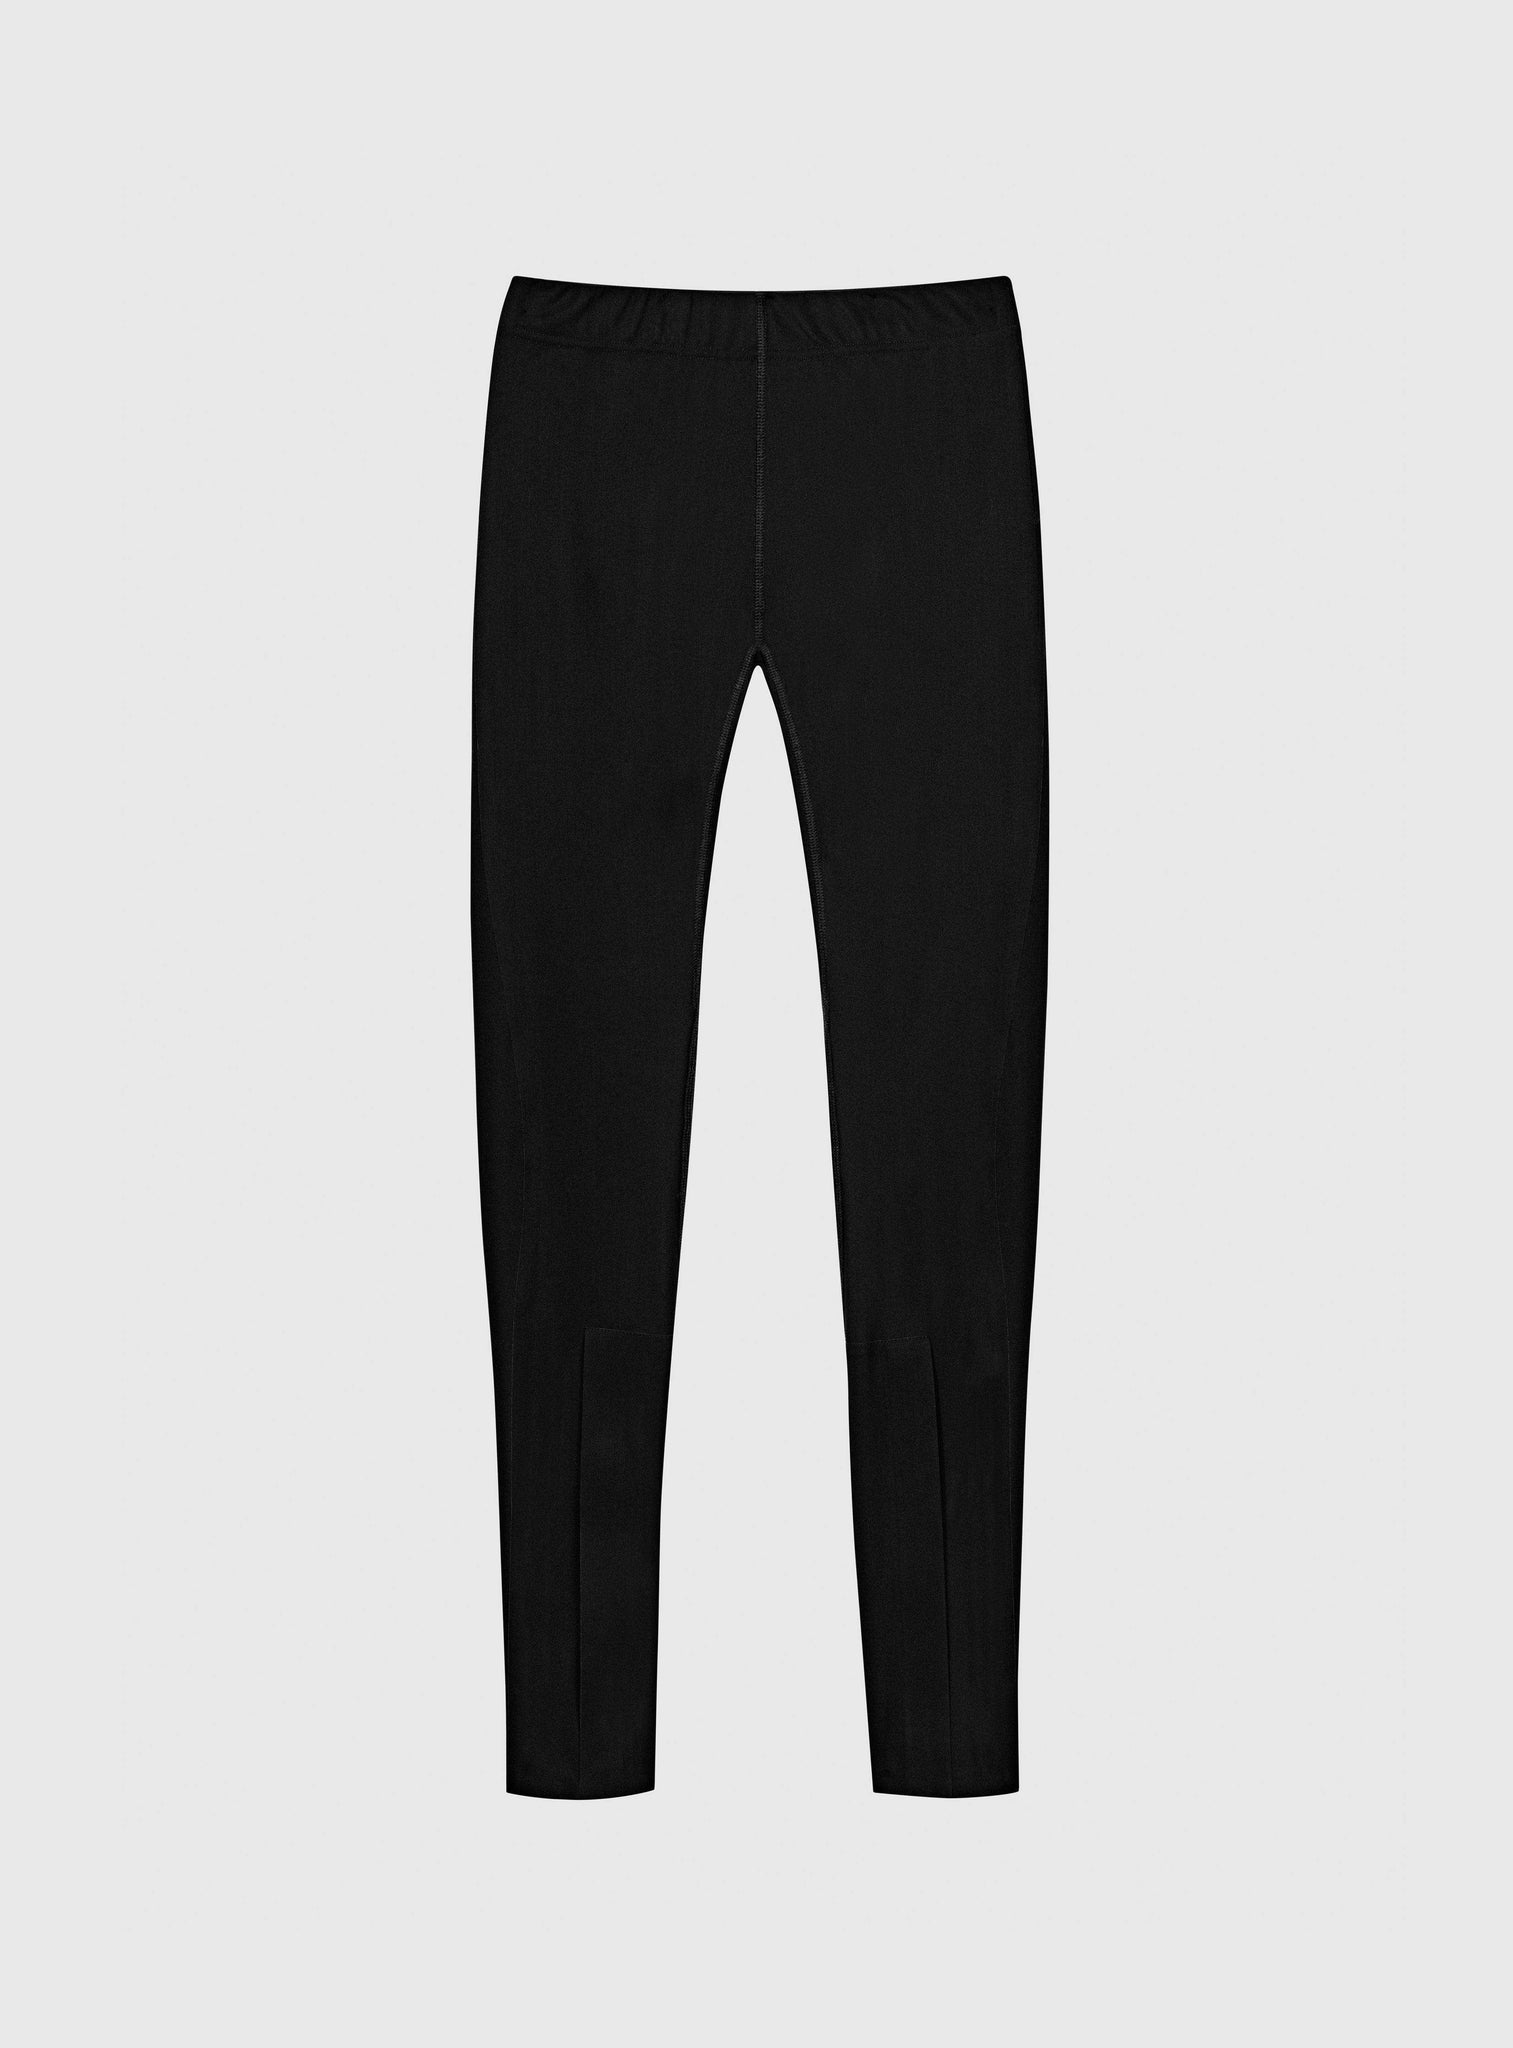 Wardrobe NYC Bottoms Black / XS Legging |W01